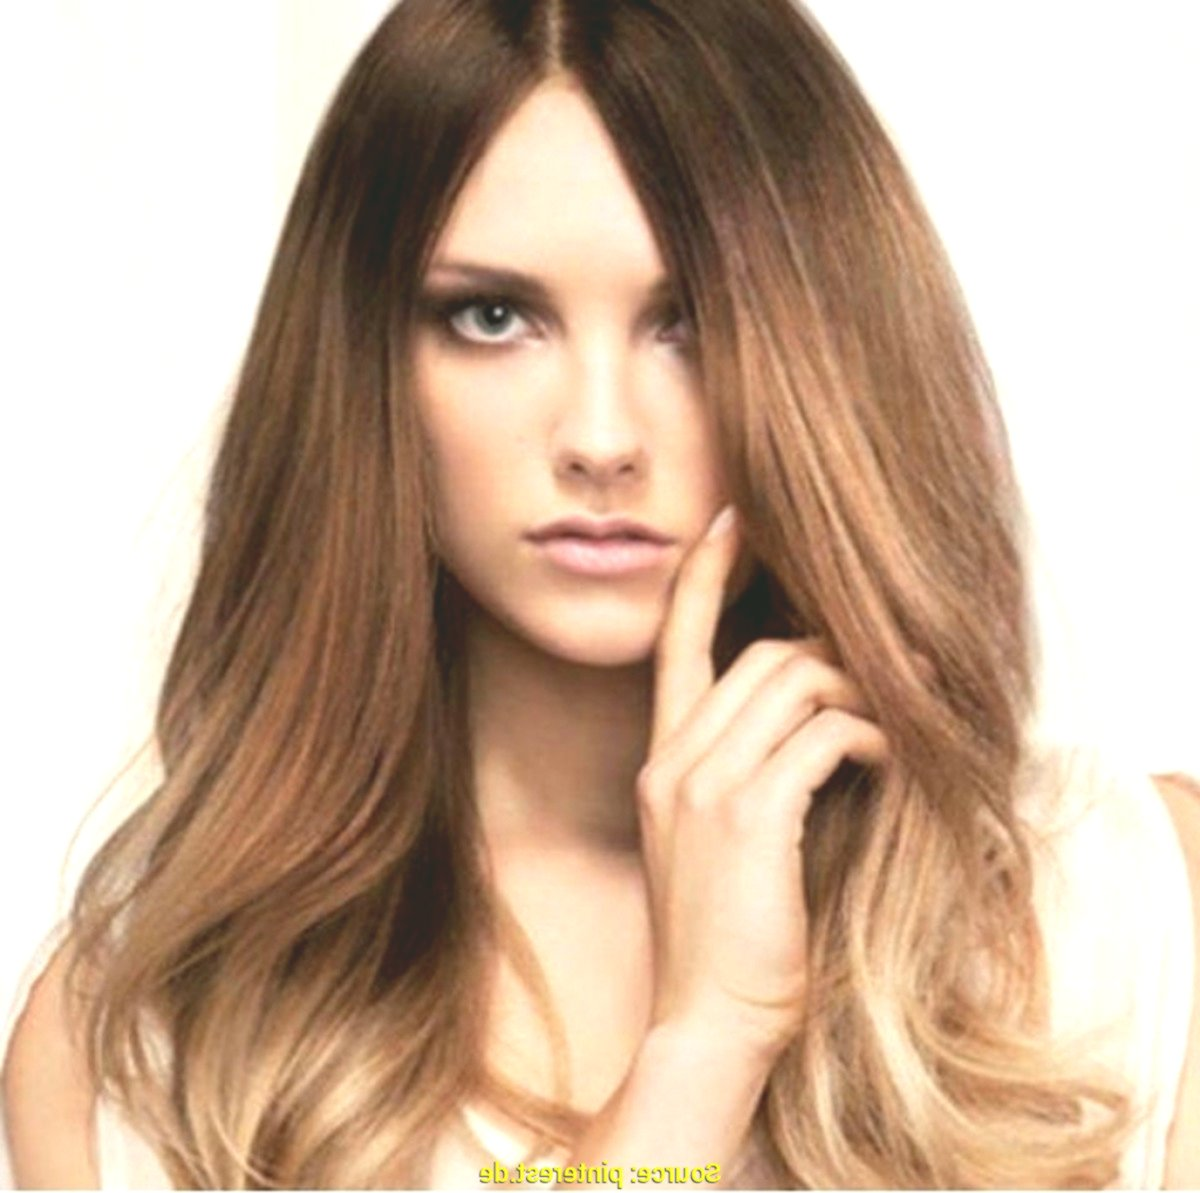 modern brown hair blond dyeing picture Stylish Brown Hair Blond Dyeing Photography